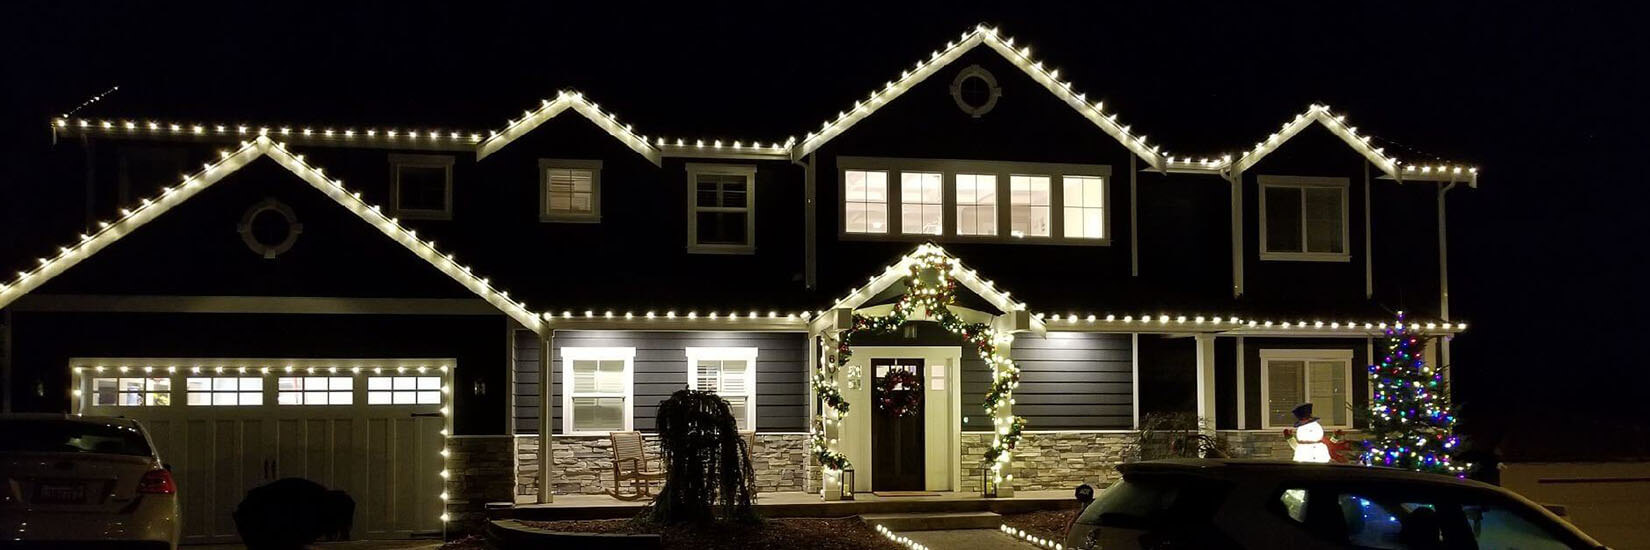 Issaquah Christmas Light Installation, Holiday Lighting Installation and Christmas Light Company